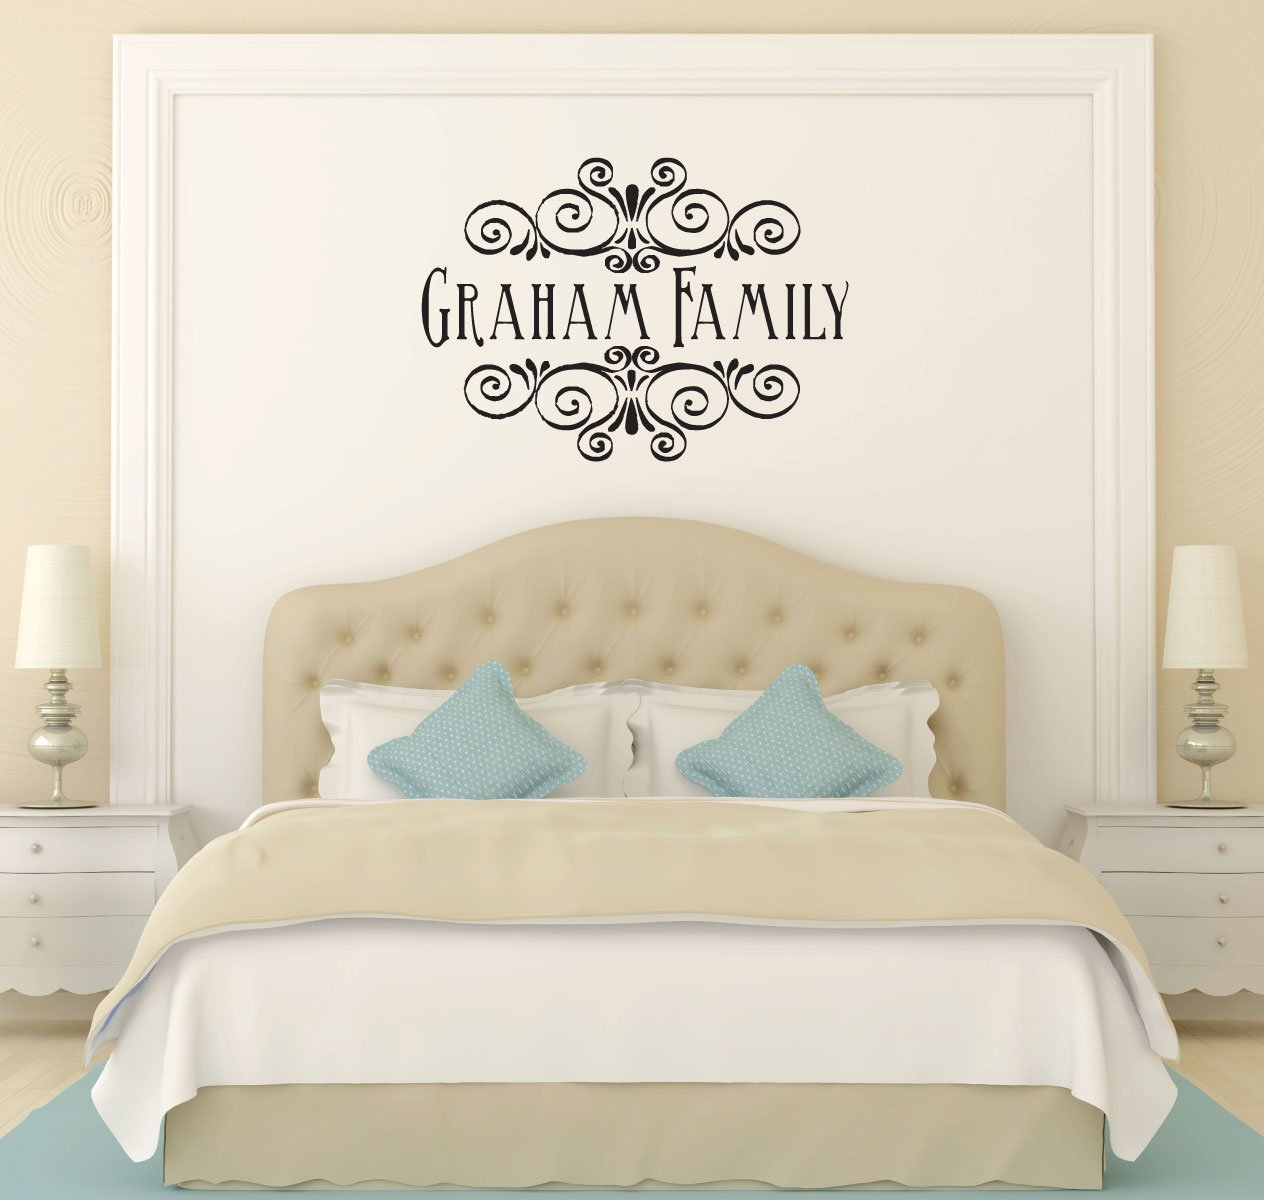 Family Name Decal - Personalized Vinyl Wall Sticker Design for Living Room, Bedroom, Kitchen - Home Decor